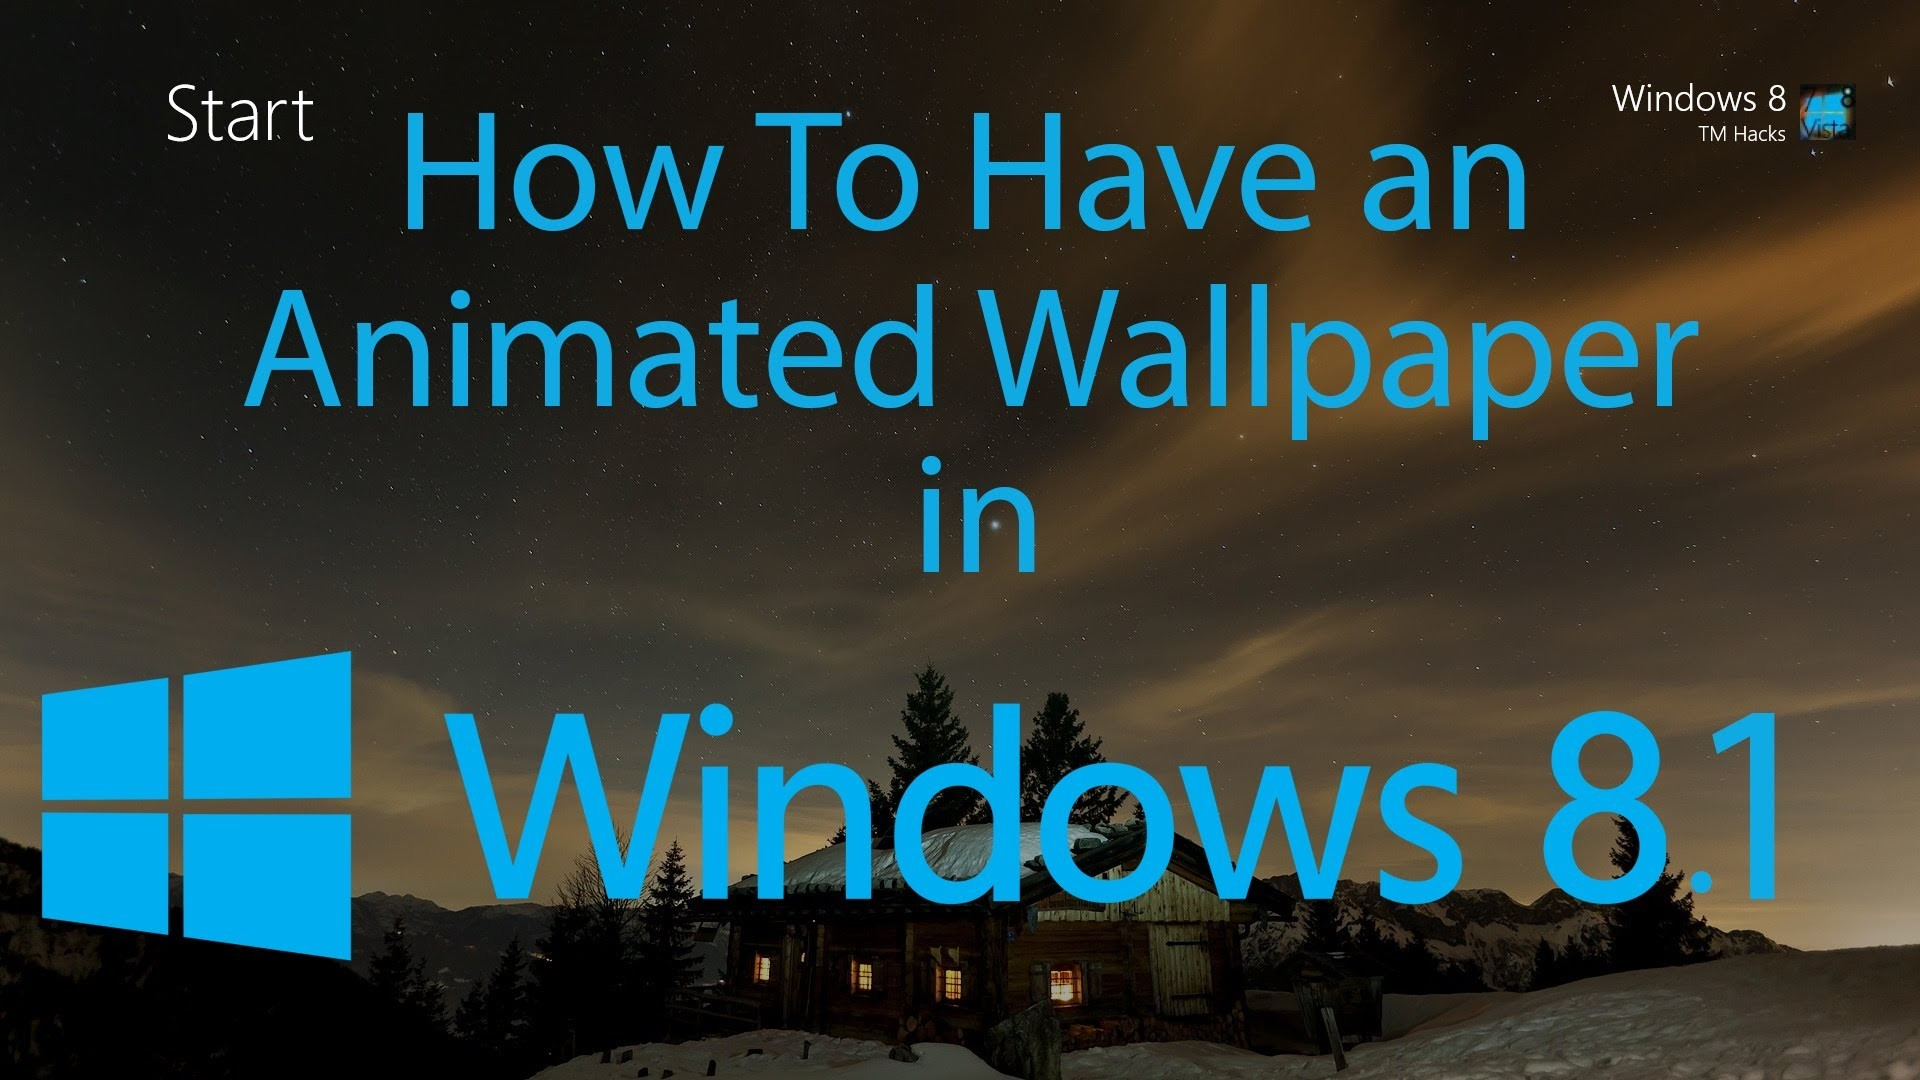 Hd Live Wallpapers For Windows 8 Vinnyoleo Vegetalinfo